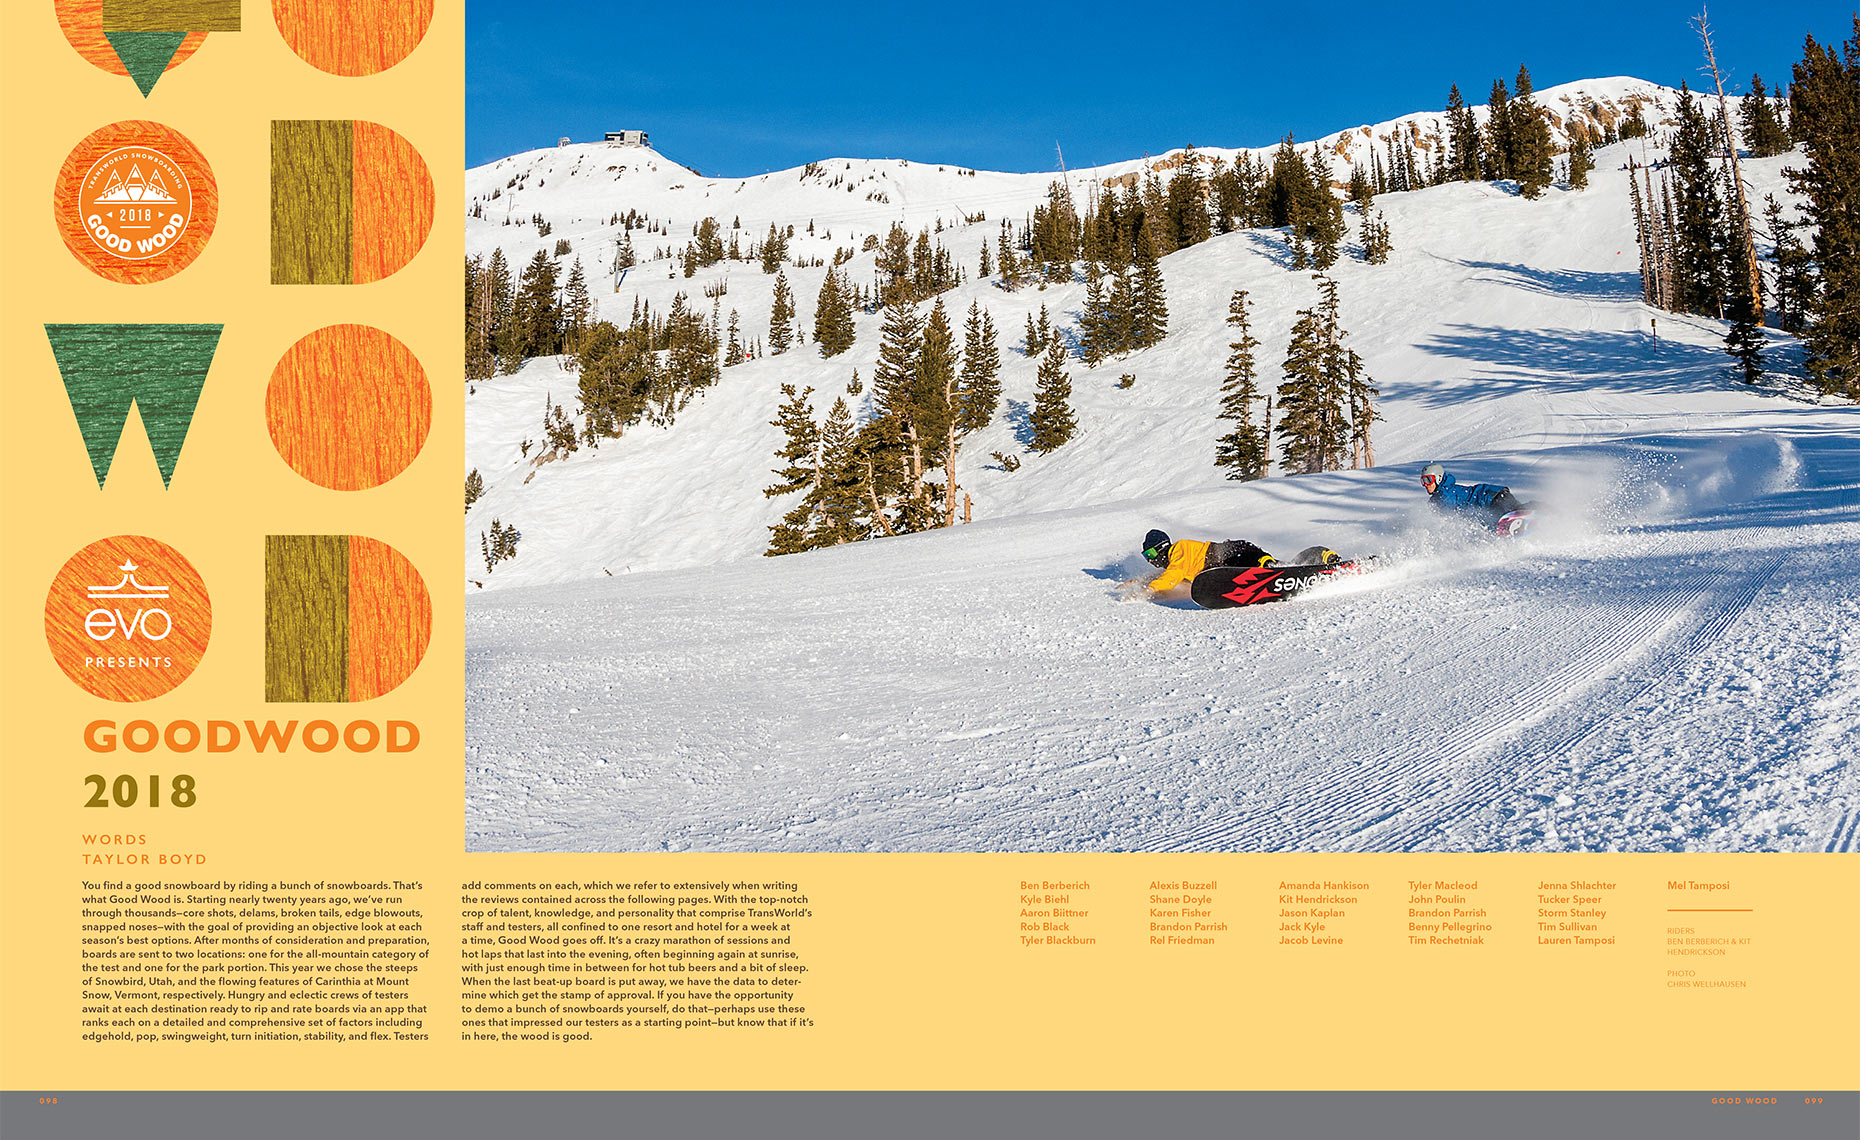 TWSNOW-Good-Wood-Board-Test-Snowbird-Utah-Chris-Wellhausen-01.JPG